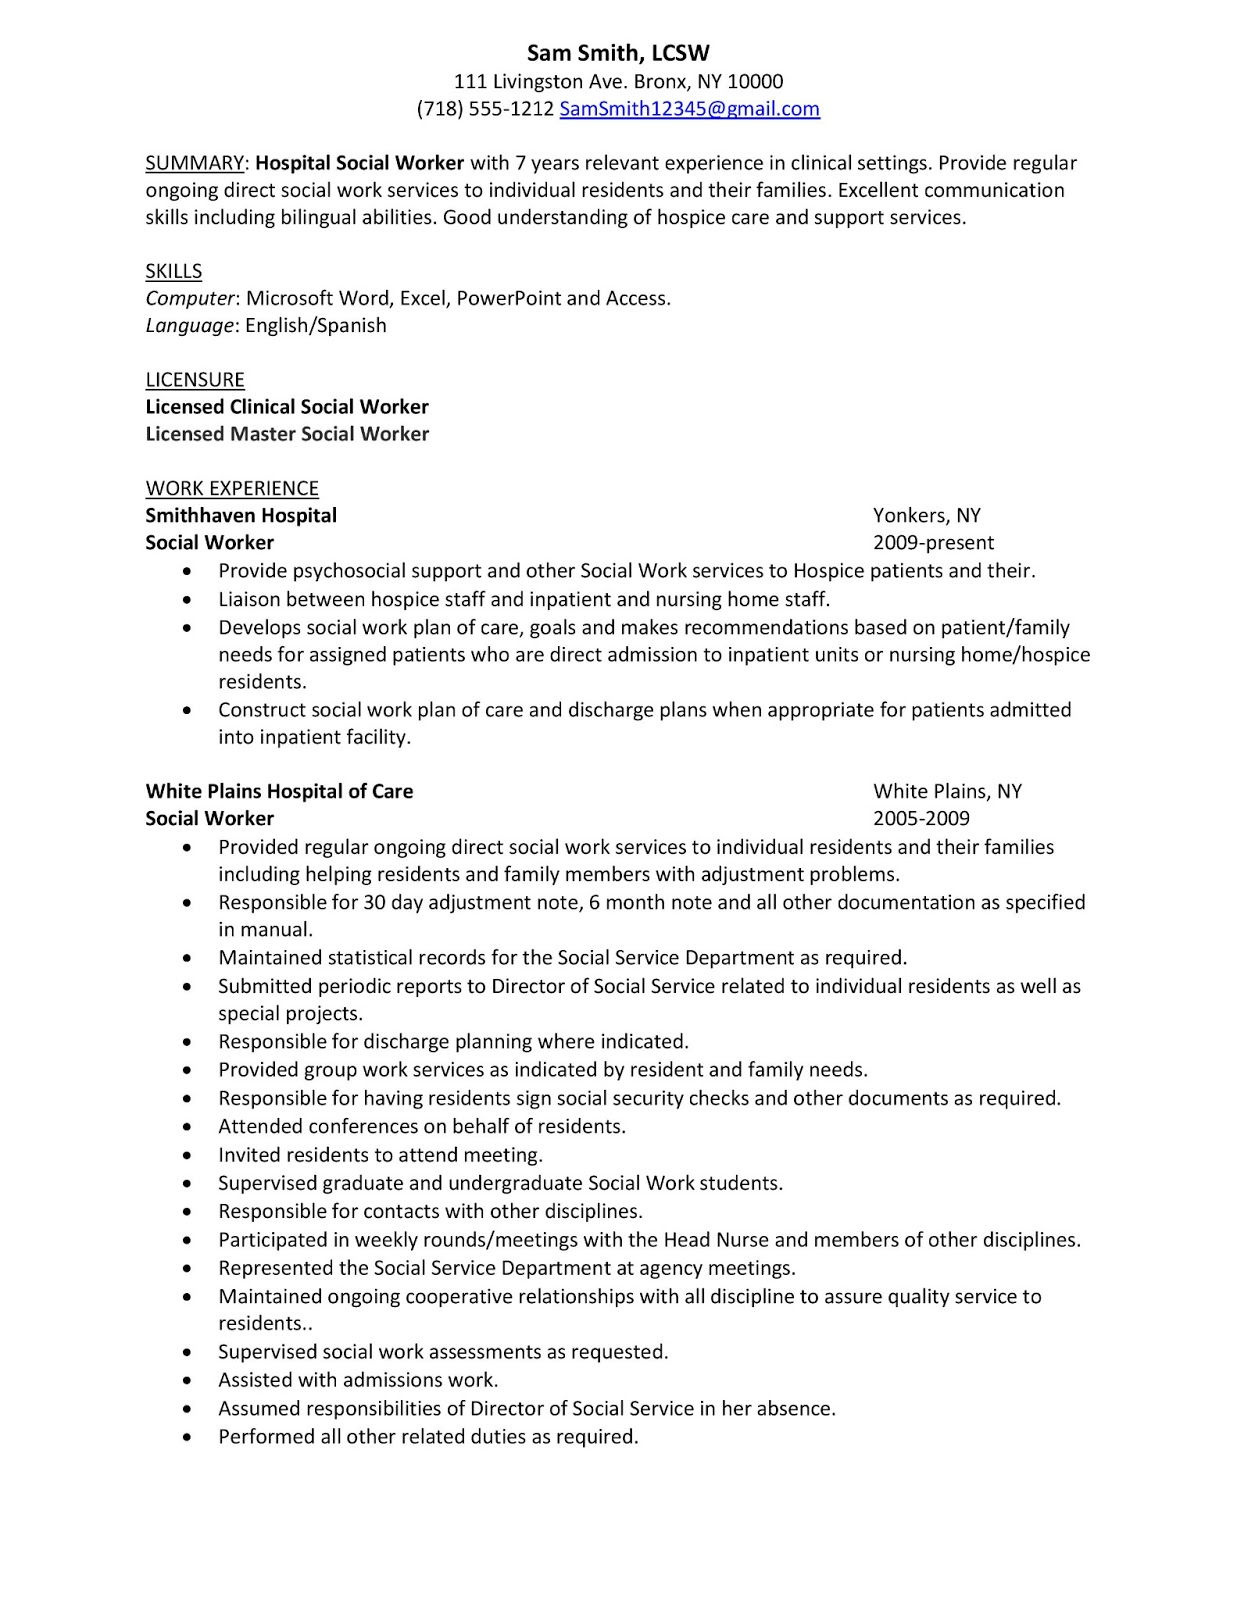 uw madison resume center pay to do women and gender stu s